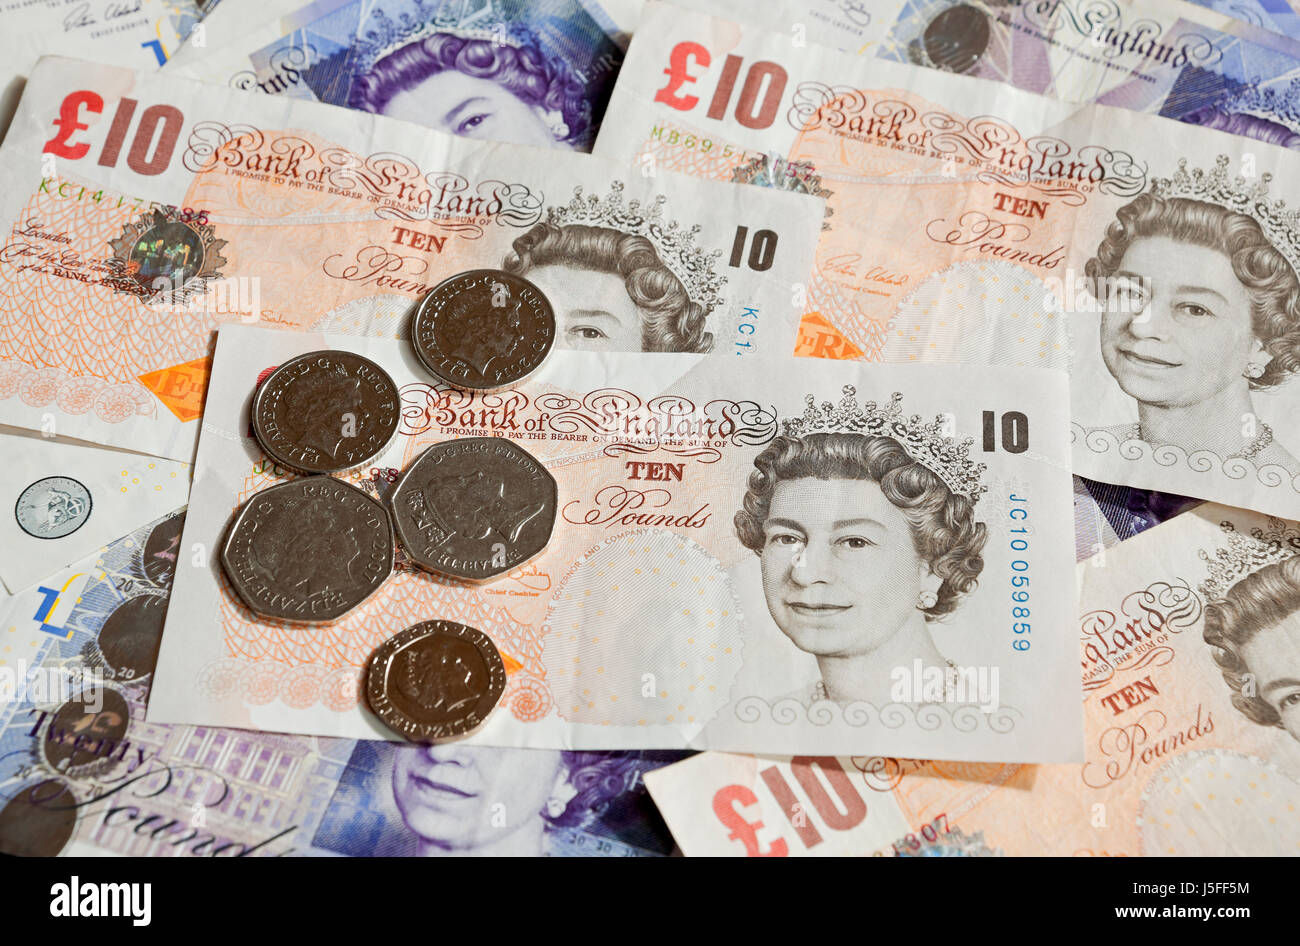 English ten and twenty pound notes and coins England UK United Kingdom GB Great Britain - Stock Image